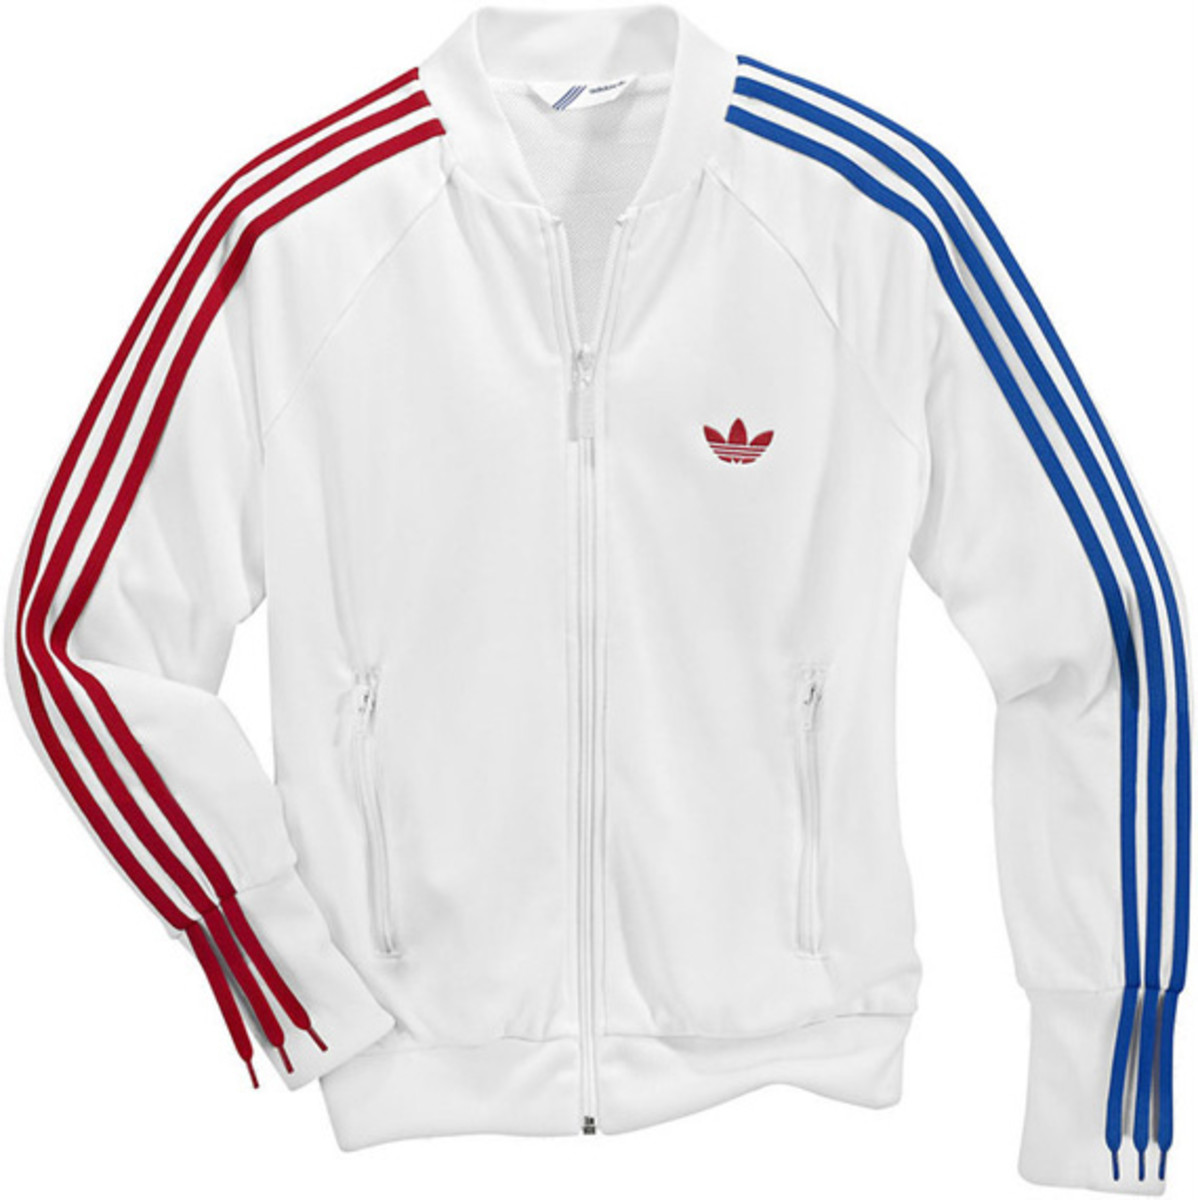 adidas-originals-fw2010-apparel-relaces-01